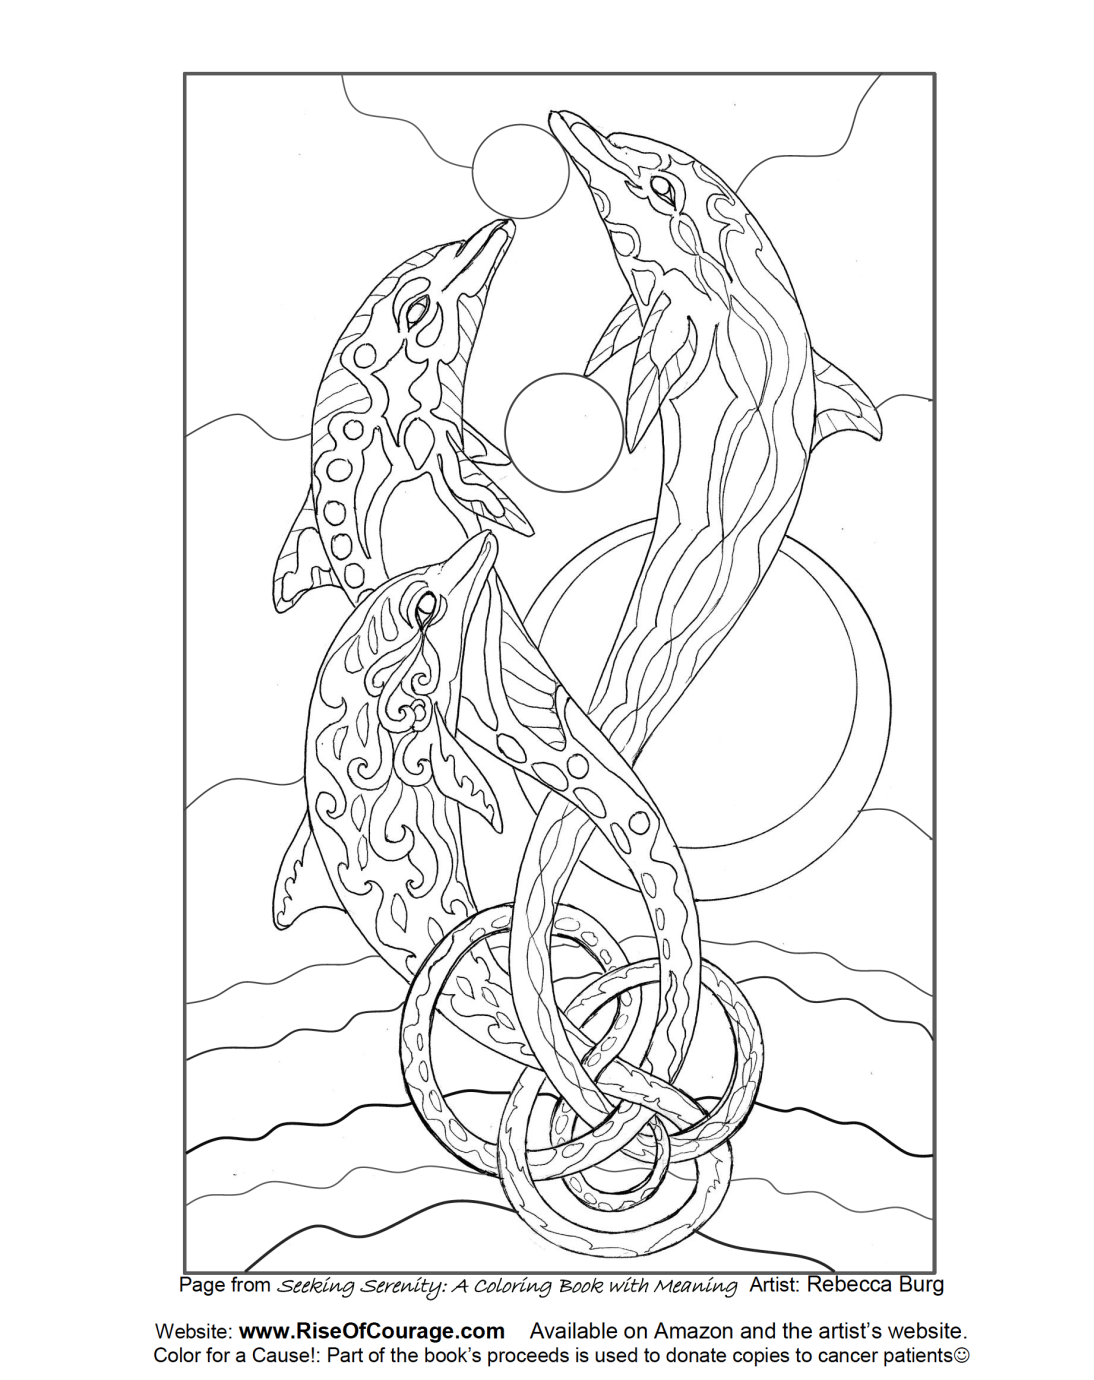 Free coloring pages dolphins - Free Coloring Page Dolphin Ocean Sea Life From The Seeking Serenity Adult Coloring Book By Rebecca